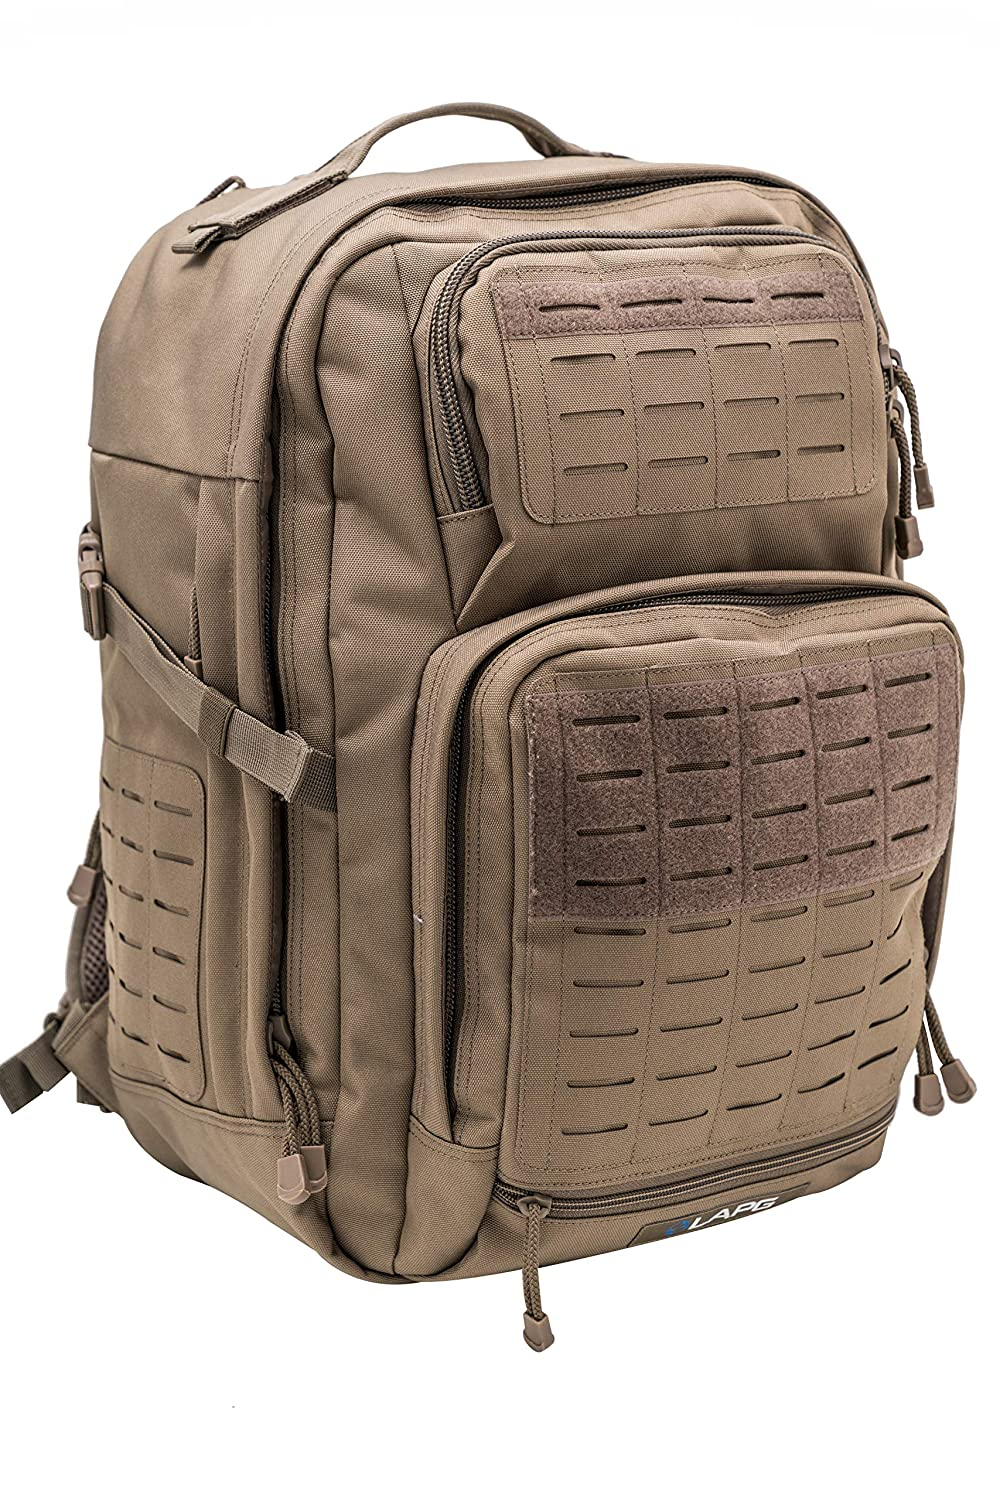 LA Police Gear Atlas 24H MOLLE Tactical Backpack for Hiking, Rucksack, Bug  Out, or Hunting